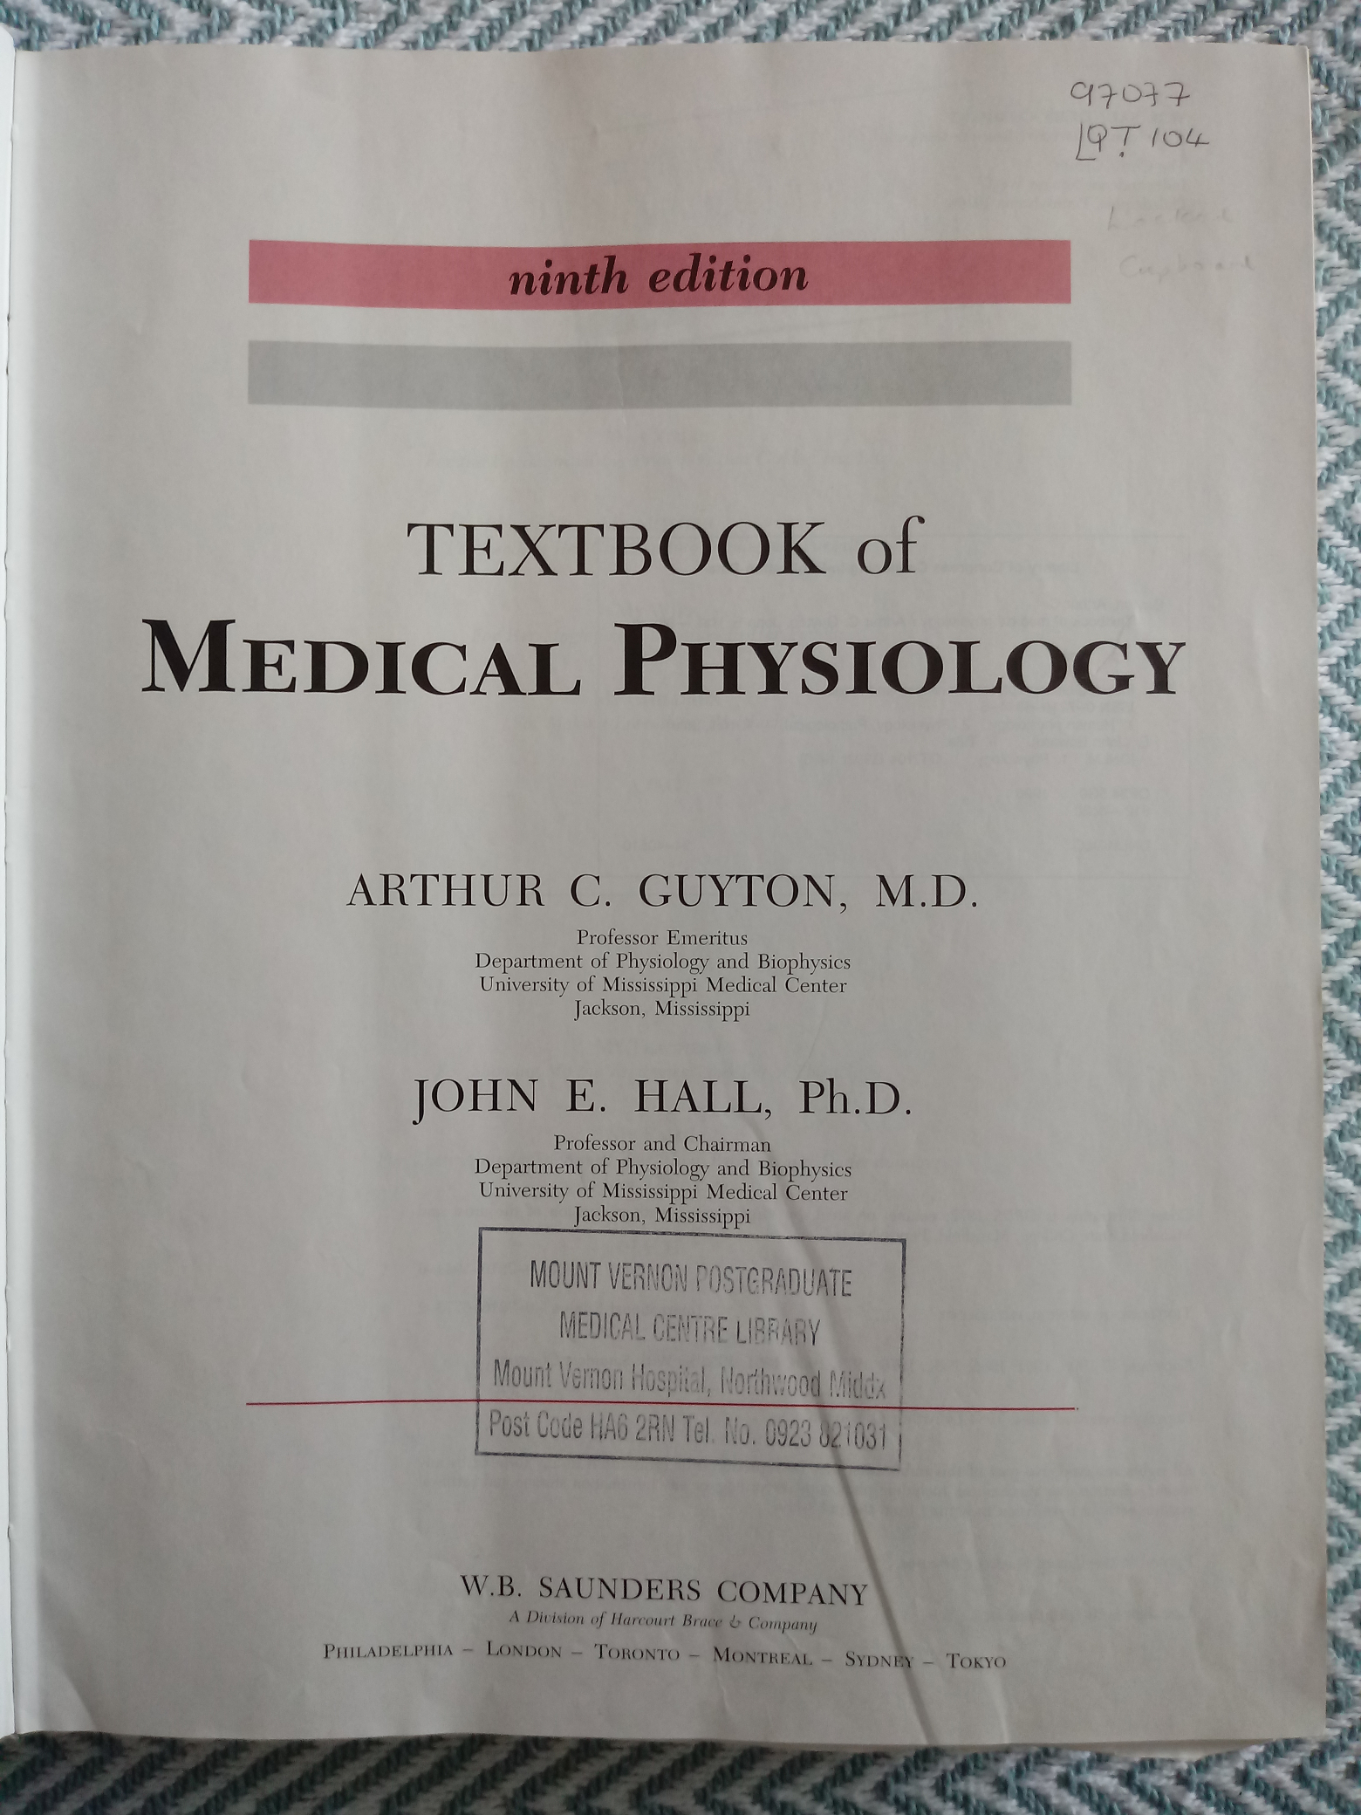 Textbook of Medical Physiology 9th Edition by Arthur Guyton and John E. Hall hardback book 1148 - Image 2 of 3